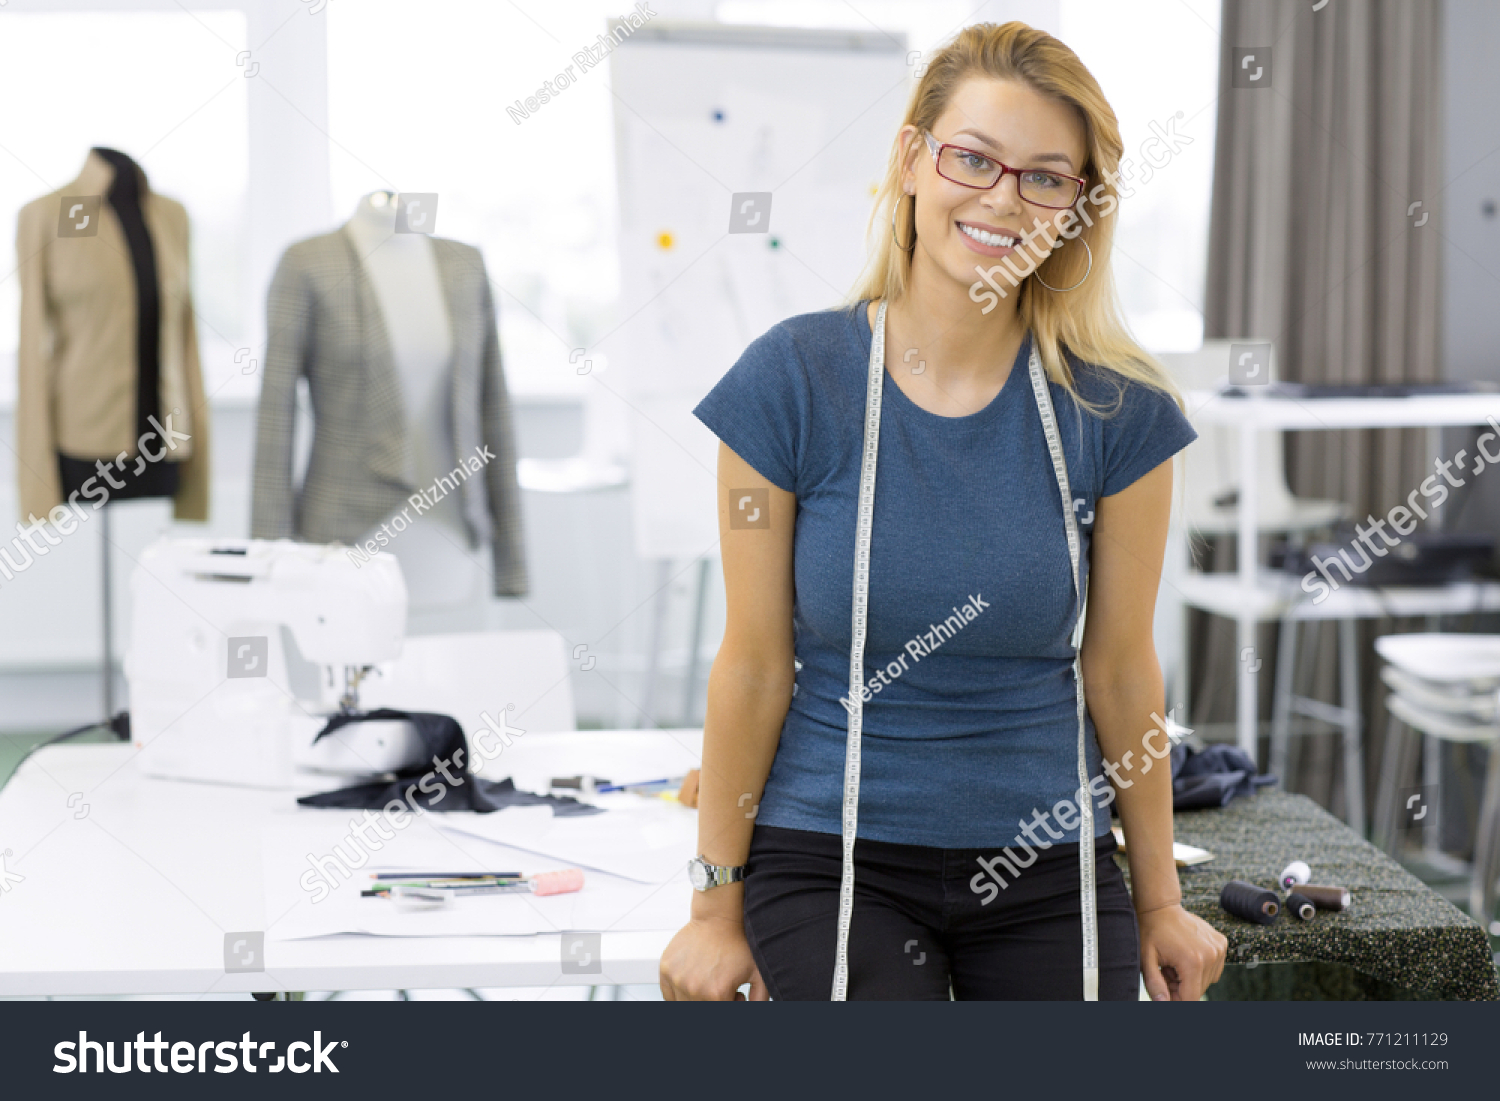 Happy Young Successful Businesswoman Fashion Designer Stock Photo Edit Now 771211129